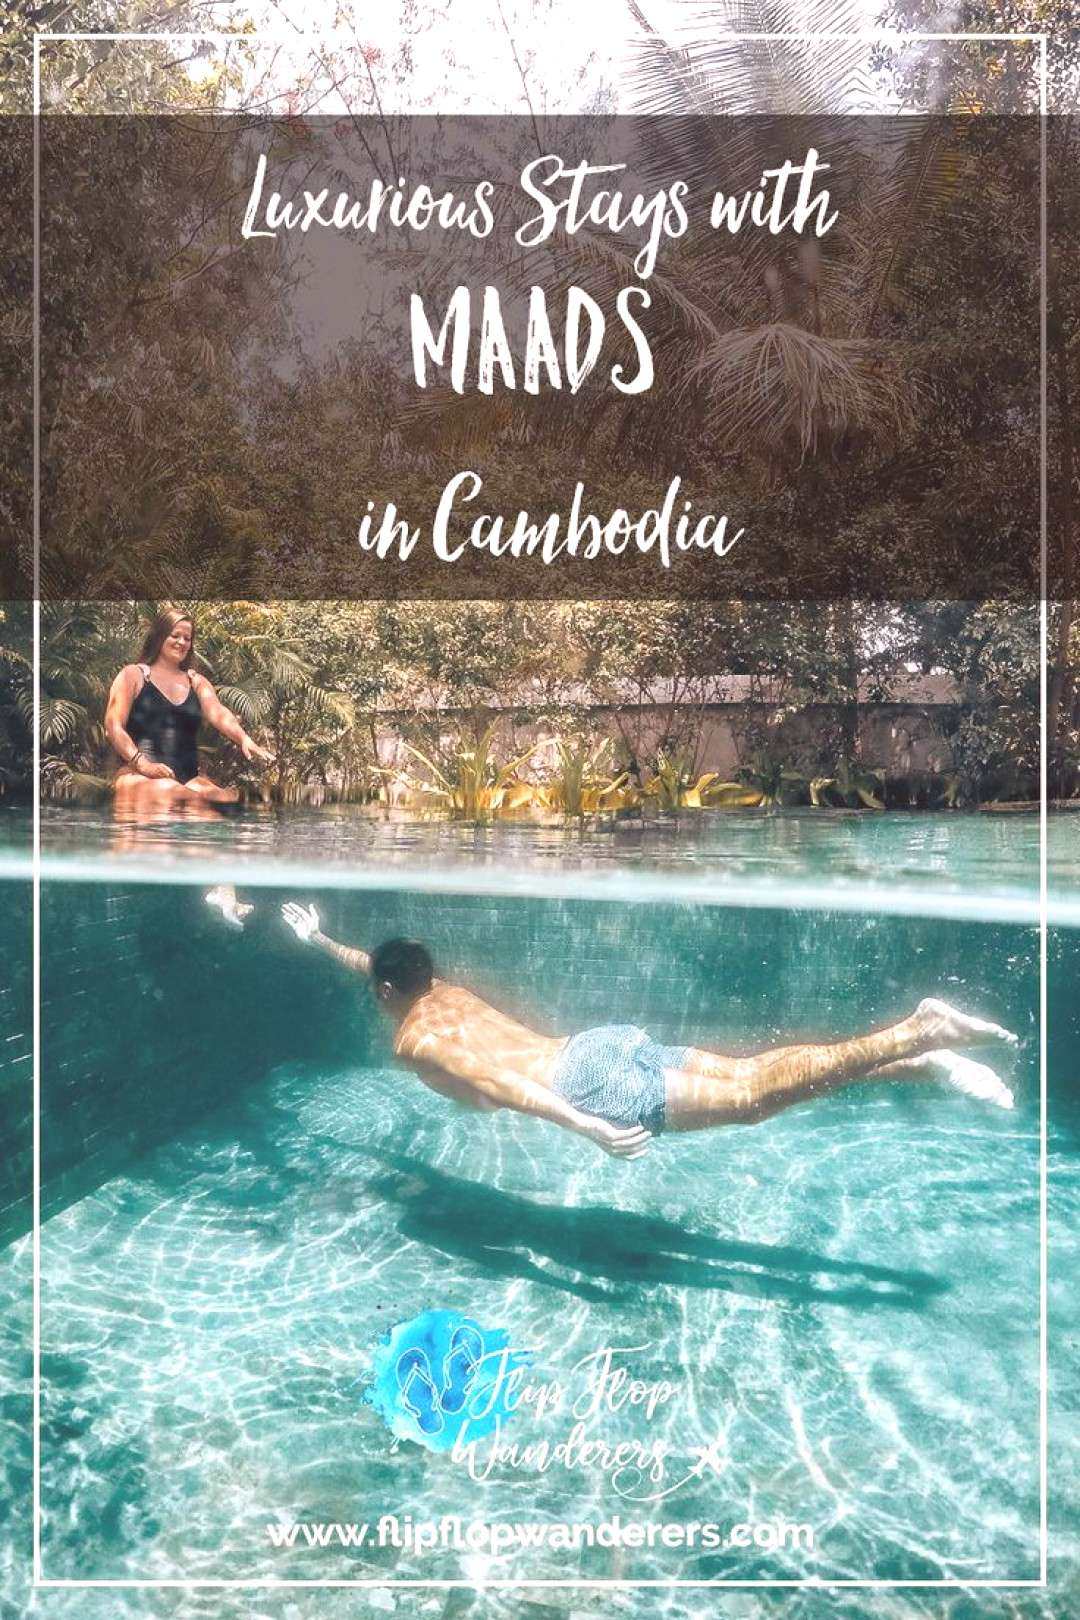 Luxurious Stays with Maads in Cambodia During our time in Cambodia we stayed in three luxurious hot